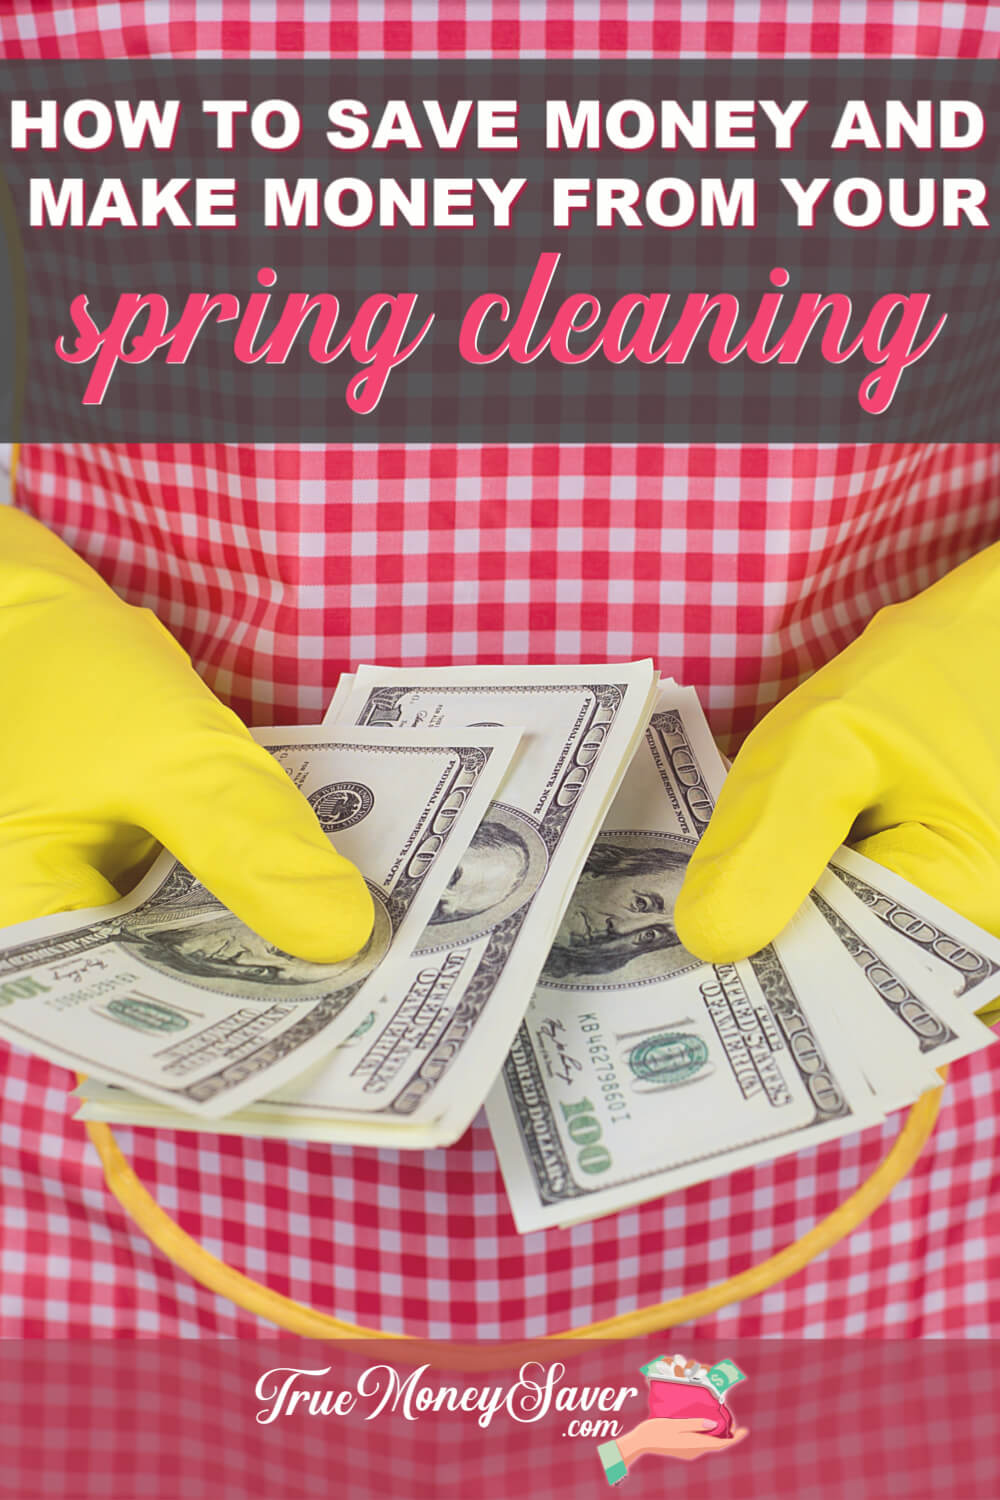 How To Save Money & Make Money From Your Spring Cleaning